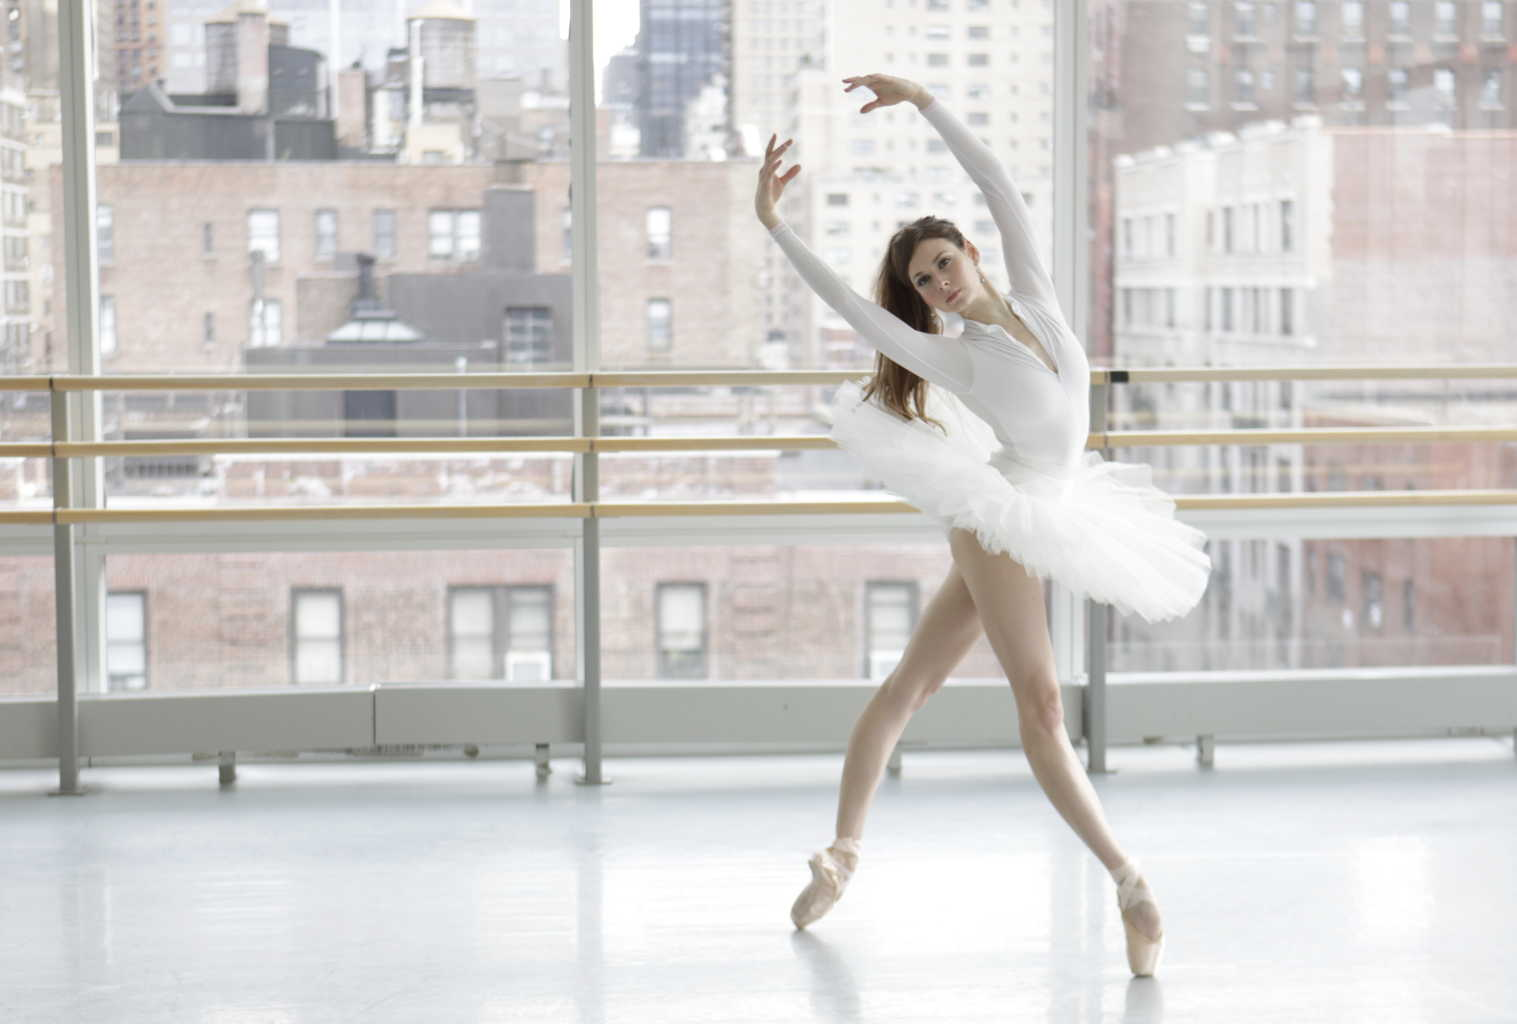 interview essay about dance